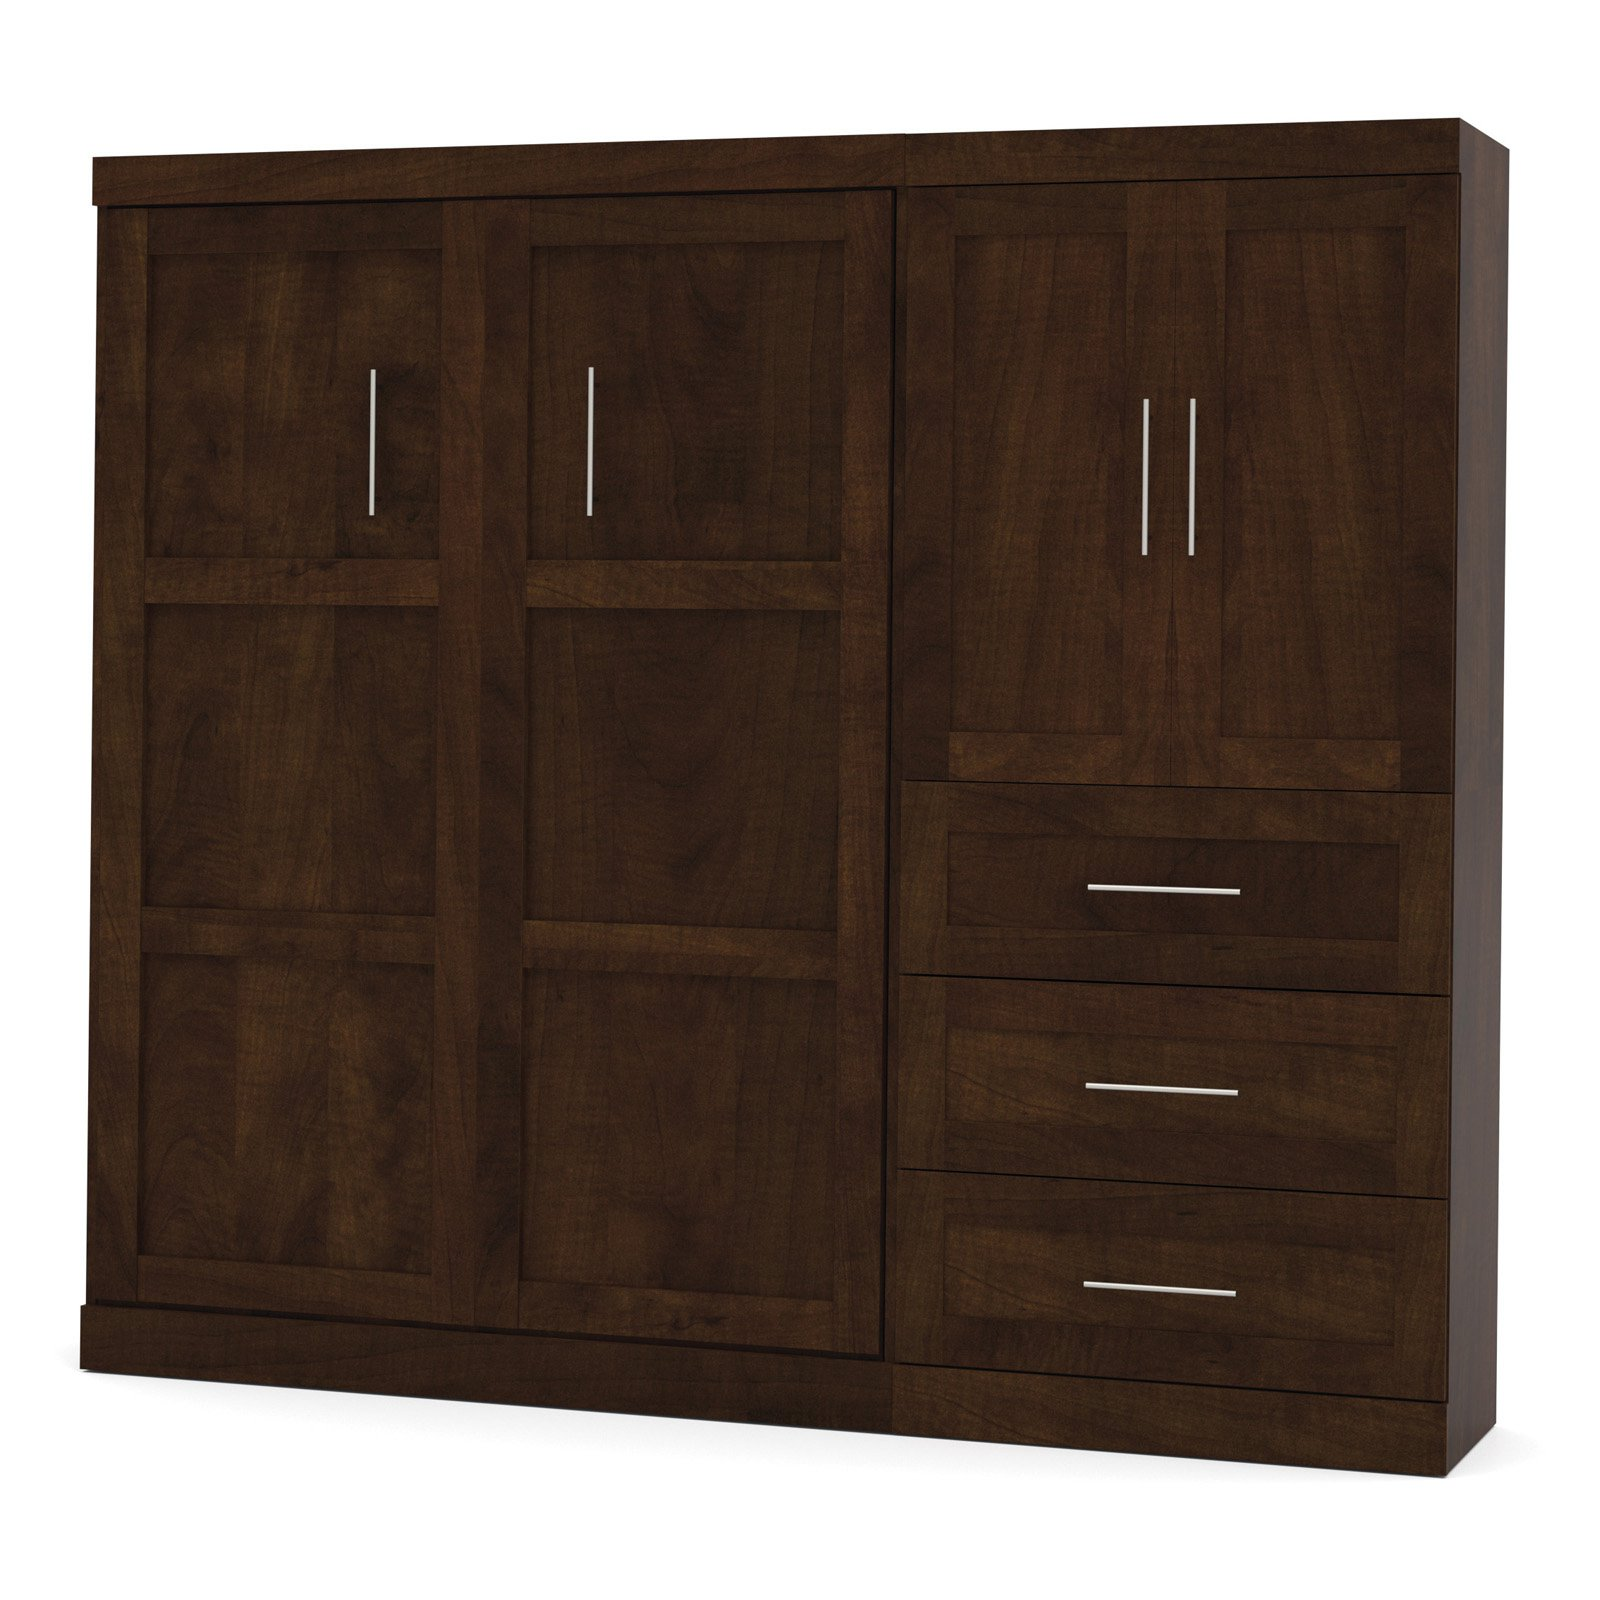 Bestar Pur Murphy Wall Bed with Storage Options